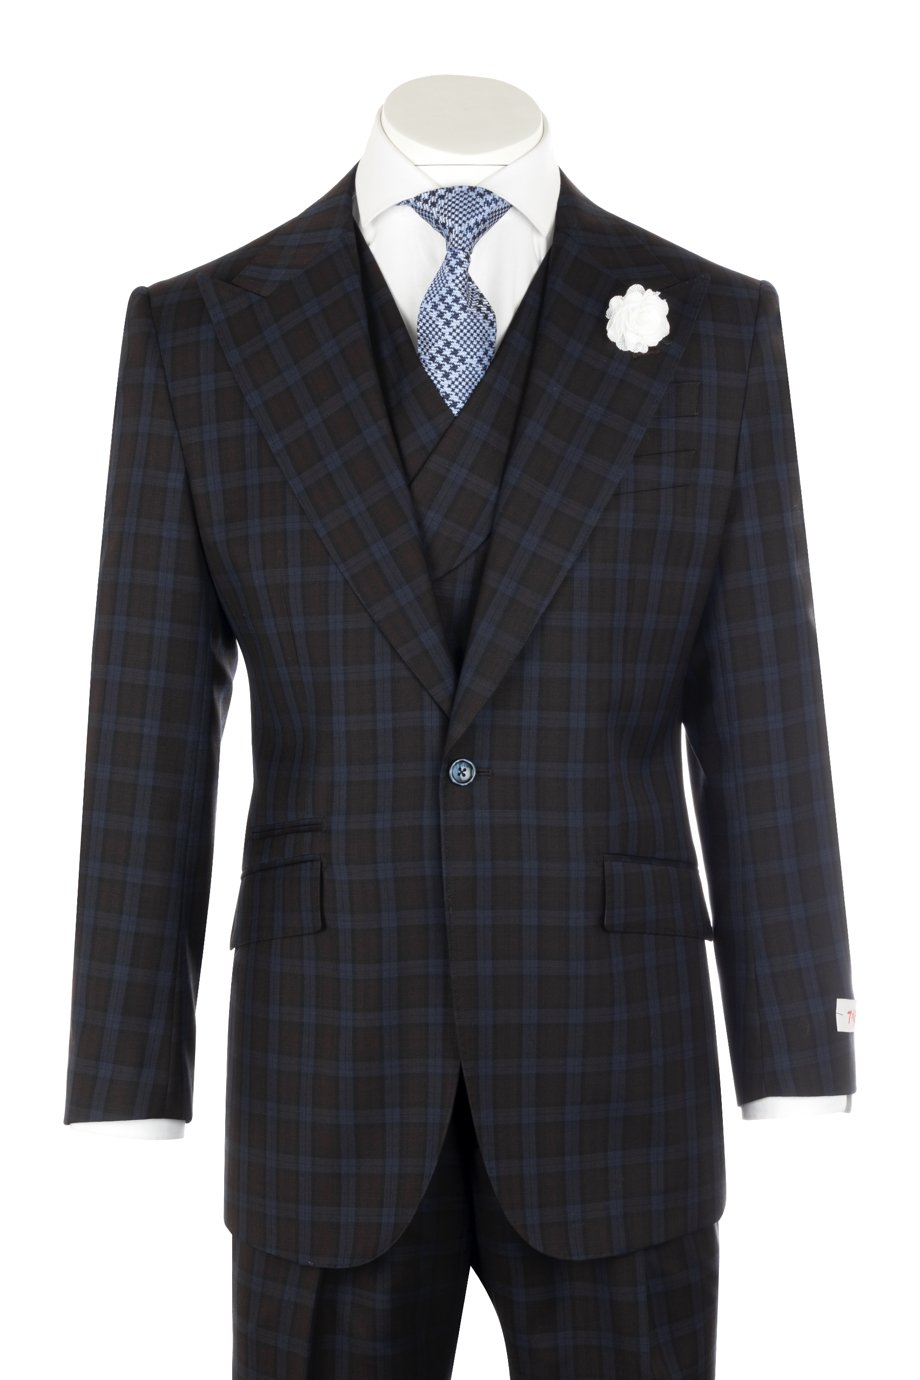 Tiglio Rosso New Rosso Brown with Blue Windowpane Wide Leg Suit R7413/3